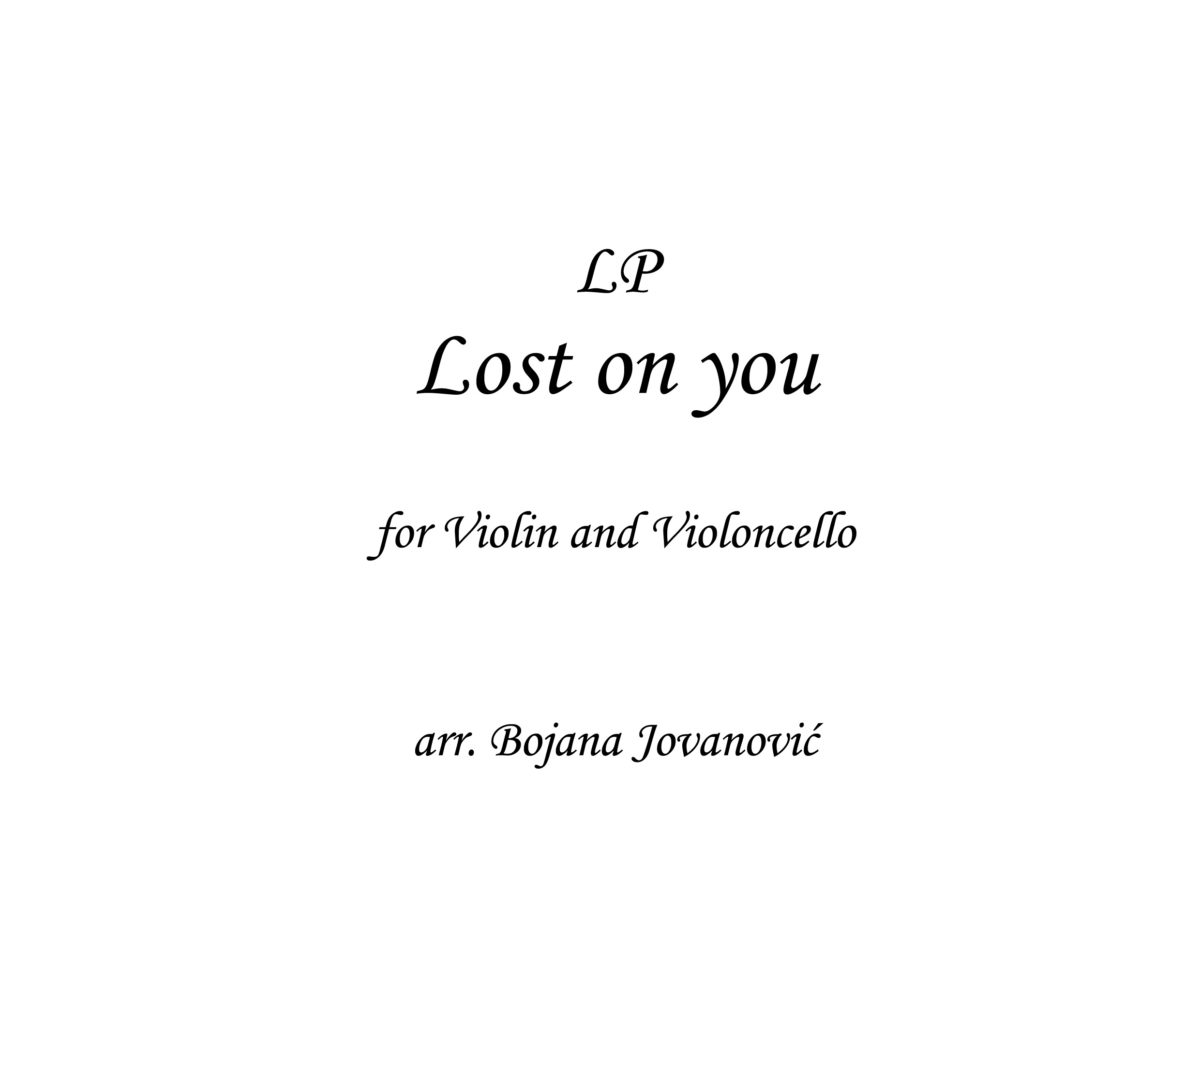 LP Lost on you Sheet music